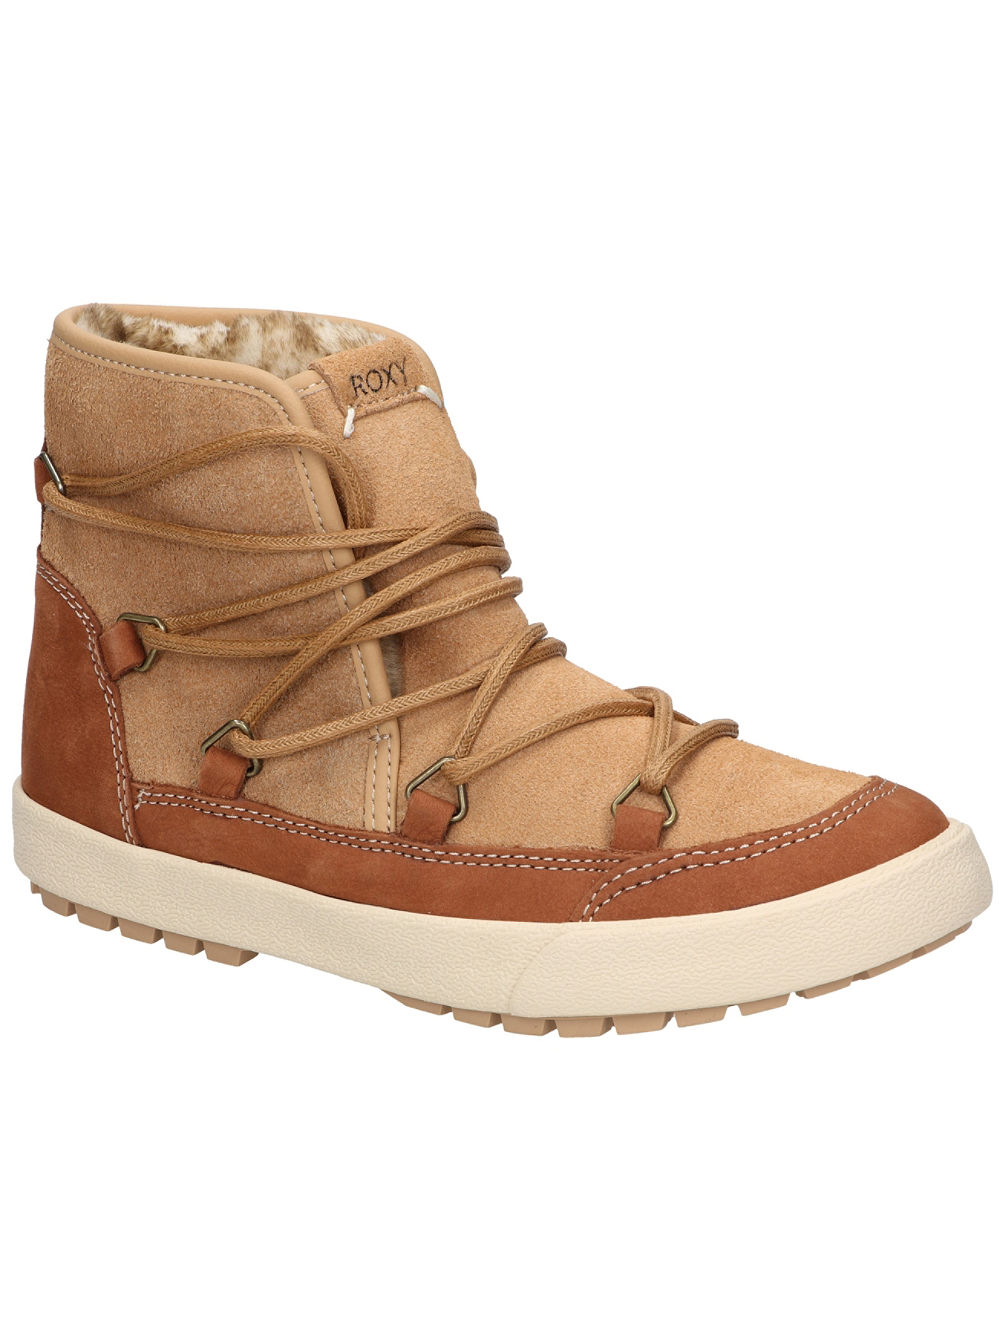 new style 00166 4e353 Darwin Shoes